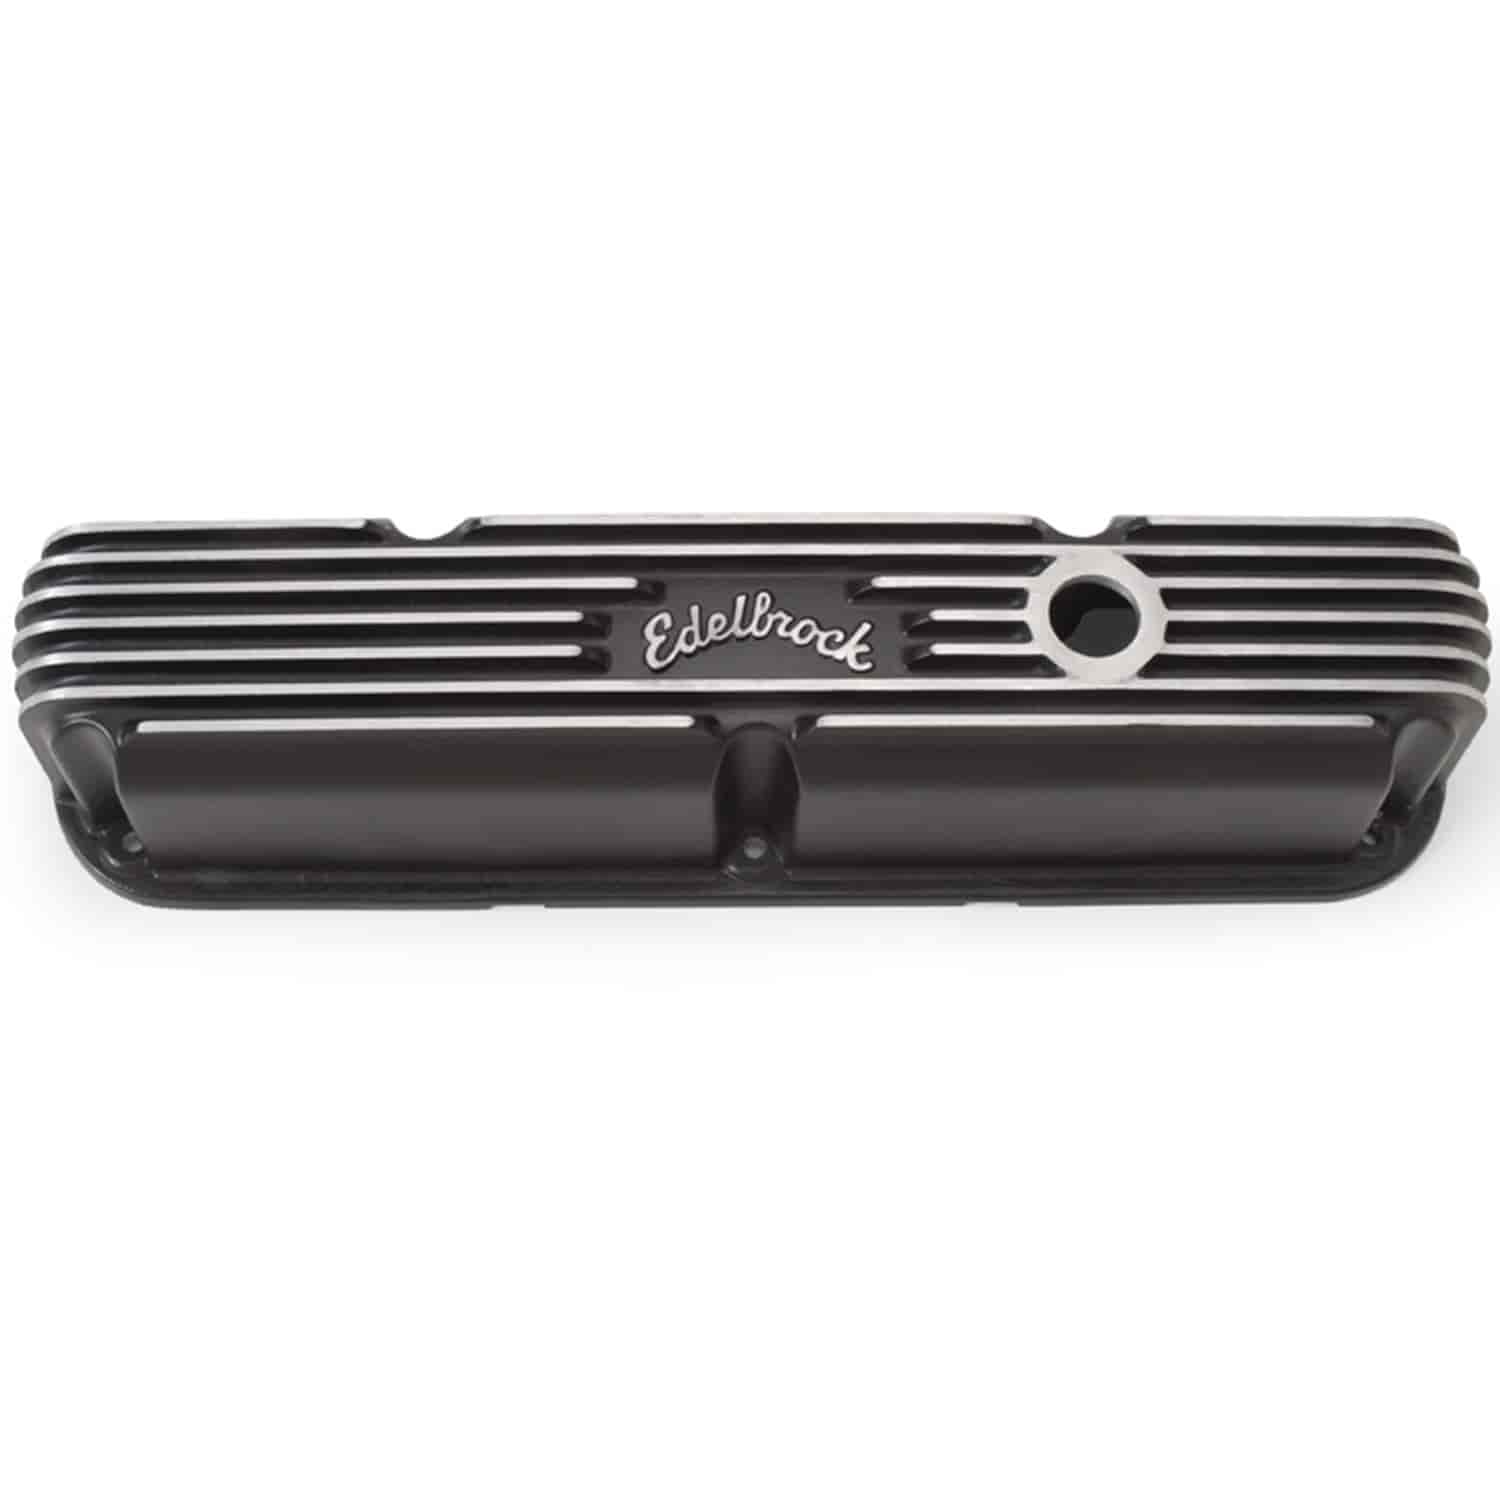 Edelbrock 41763 - Edelbrock Classic Series Valve Covers & Air Cleaners